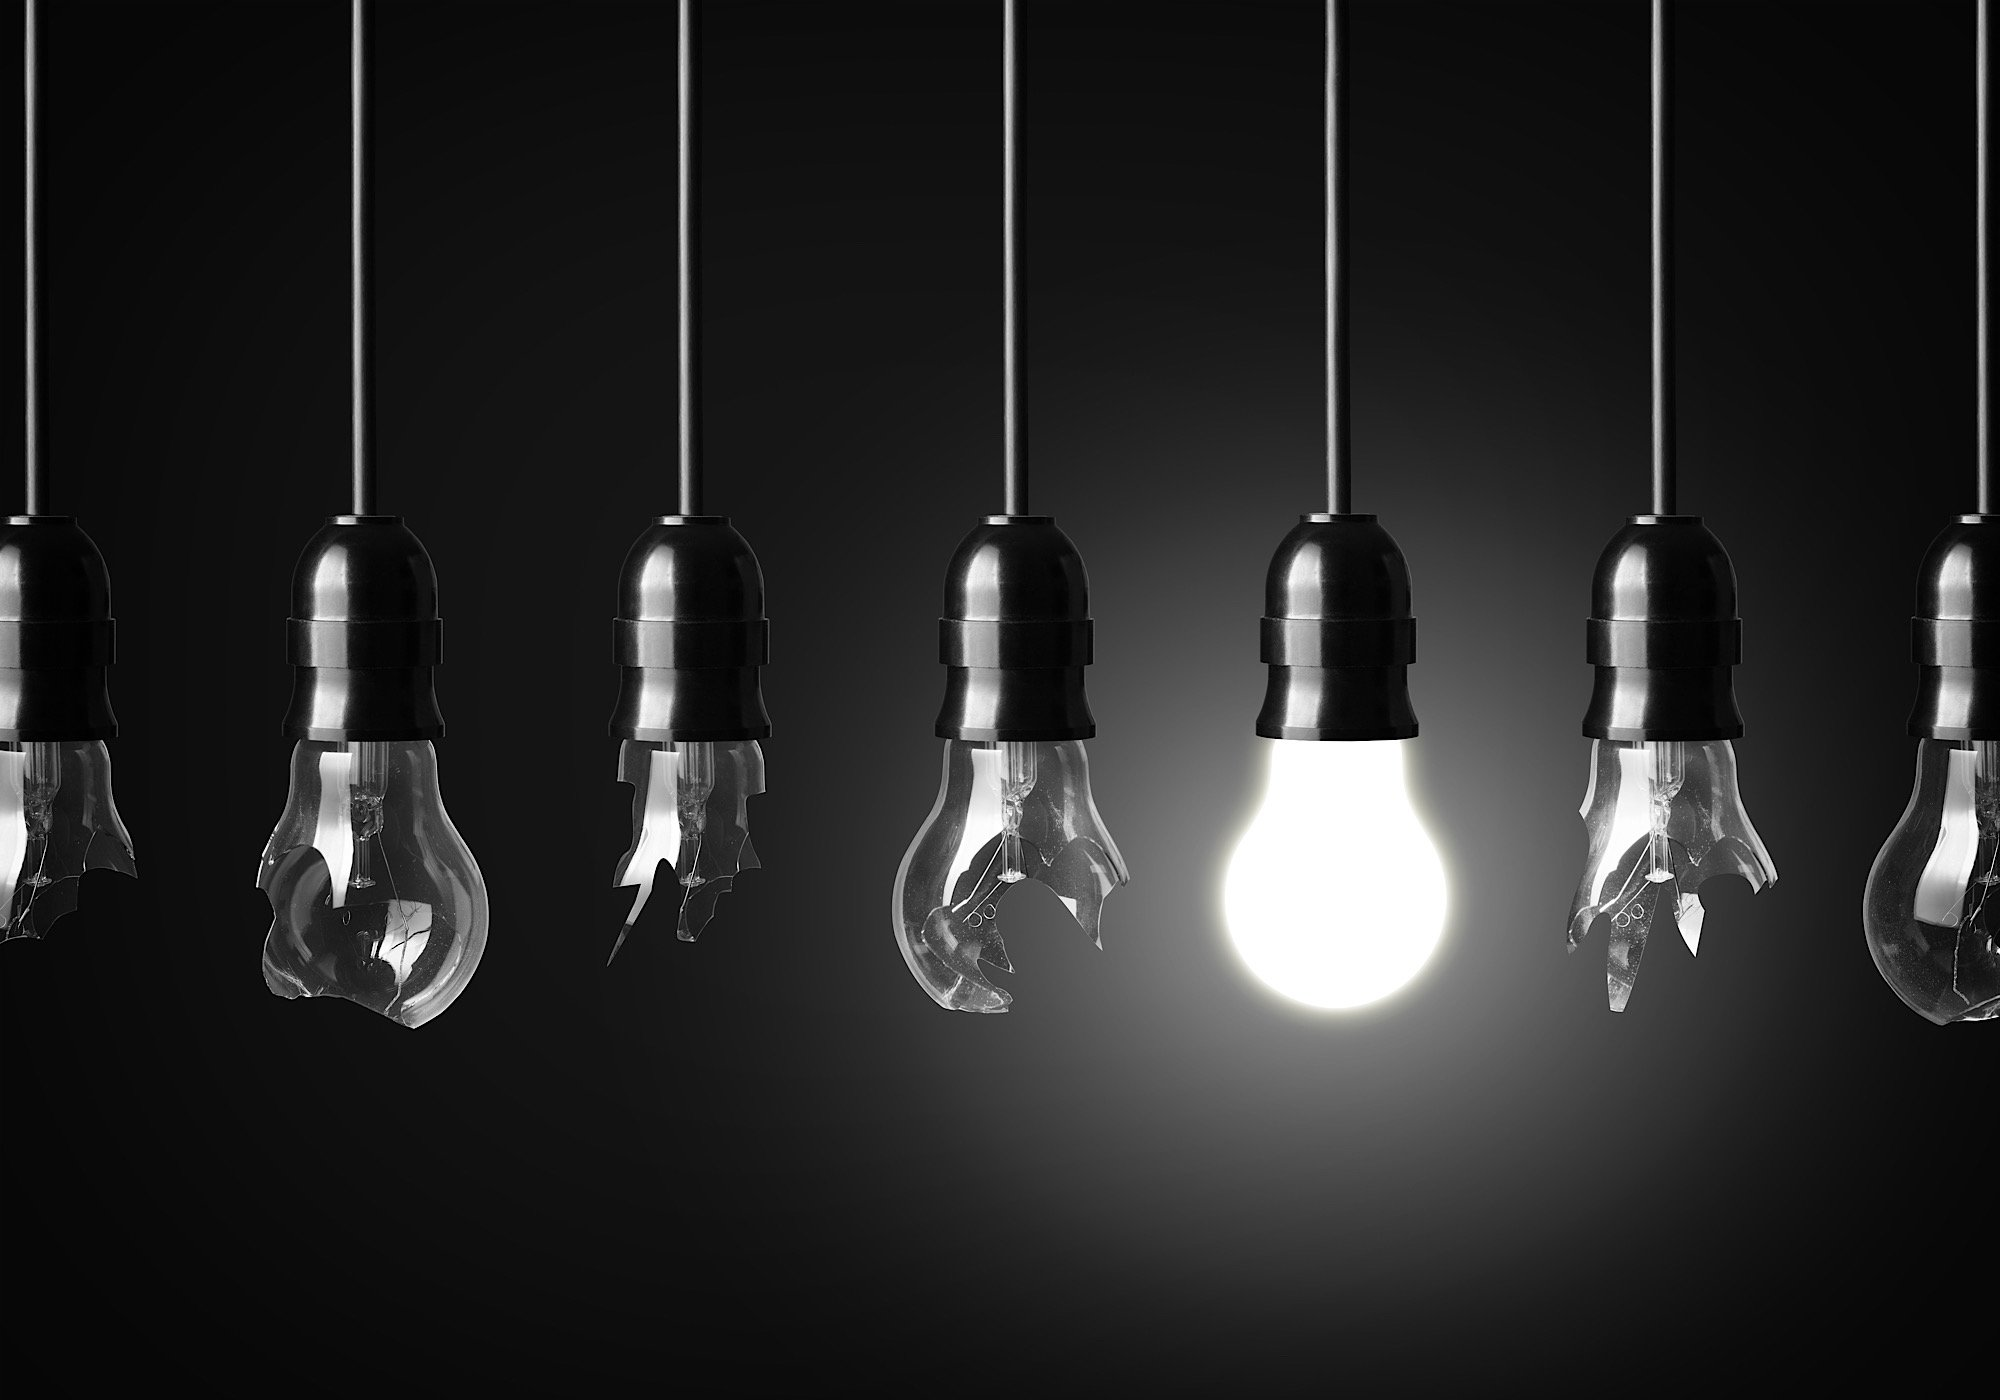 A row of lightbulbs in black and white. Only one of the bulbs is lit